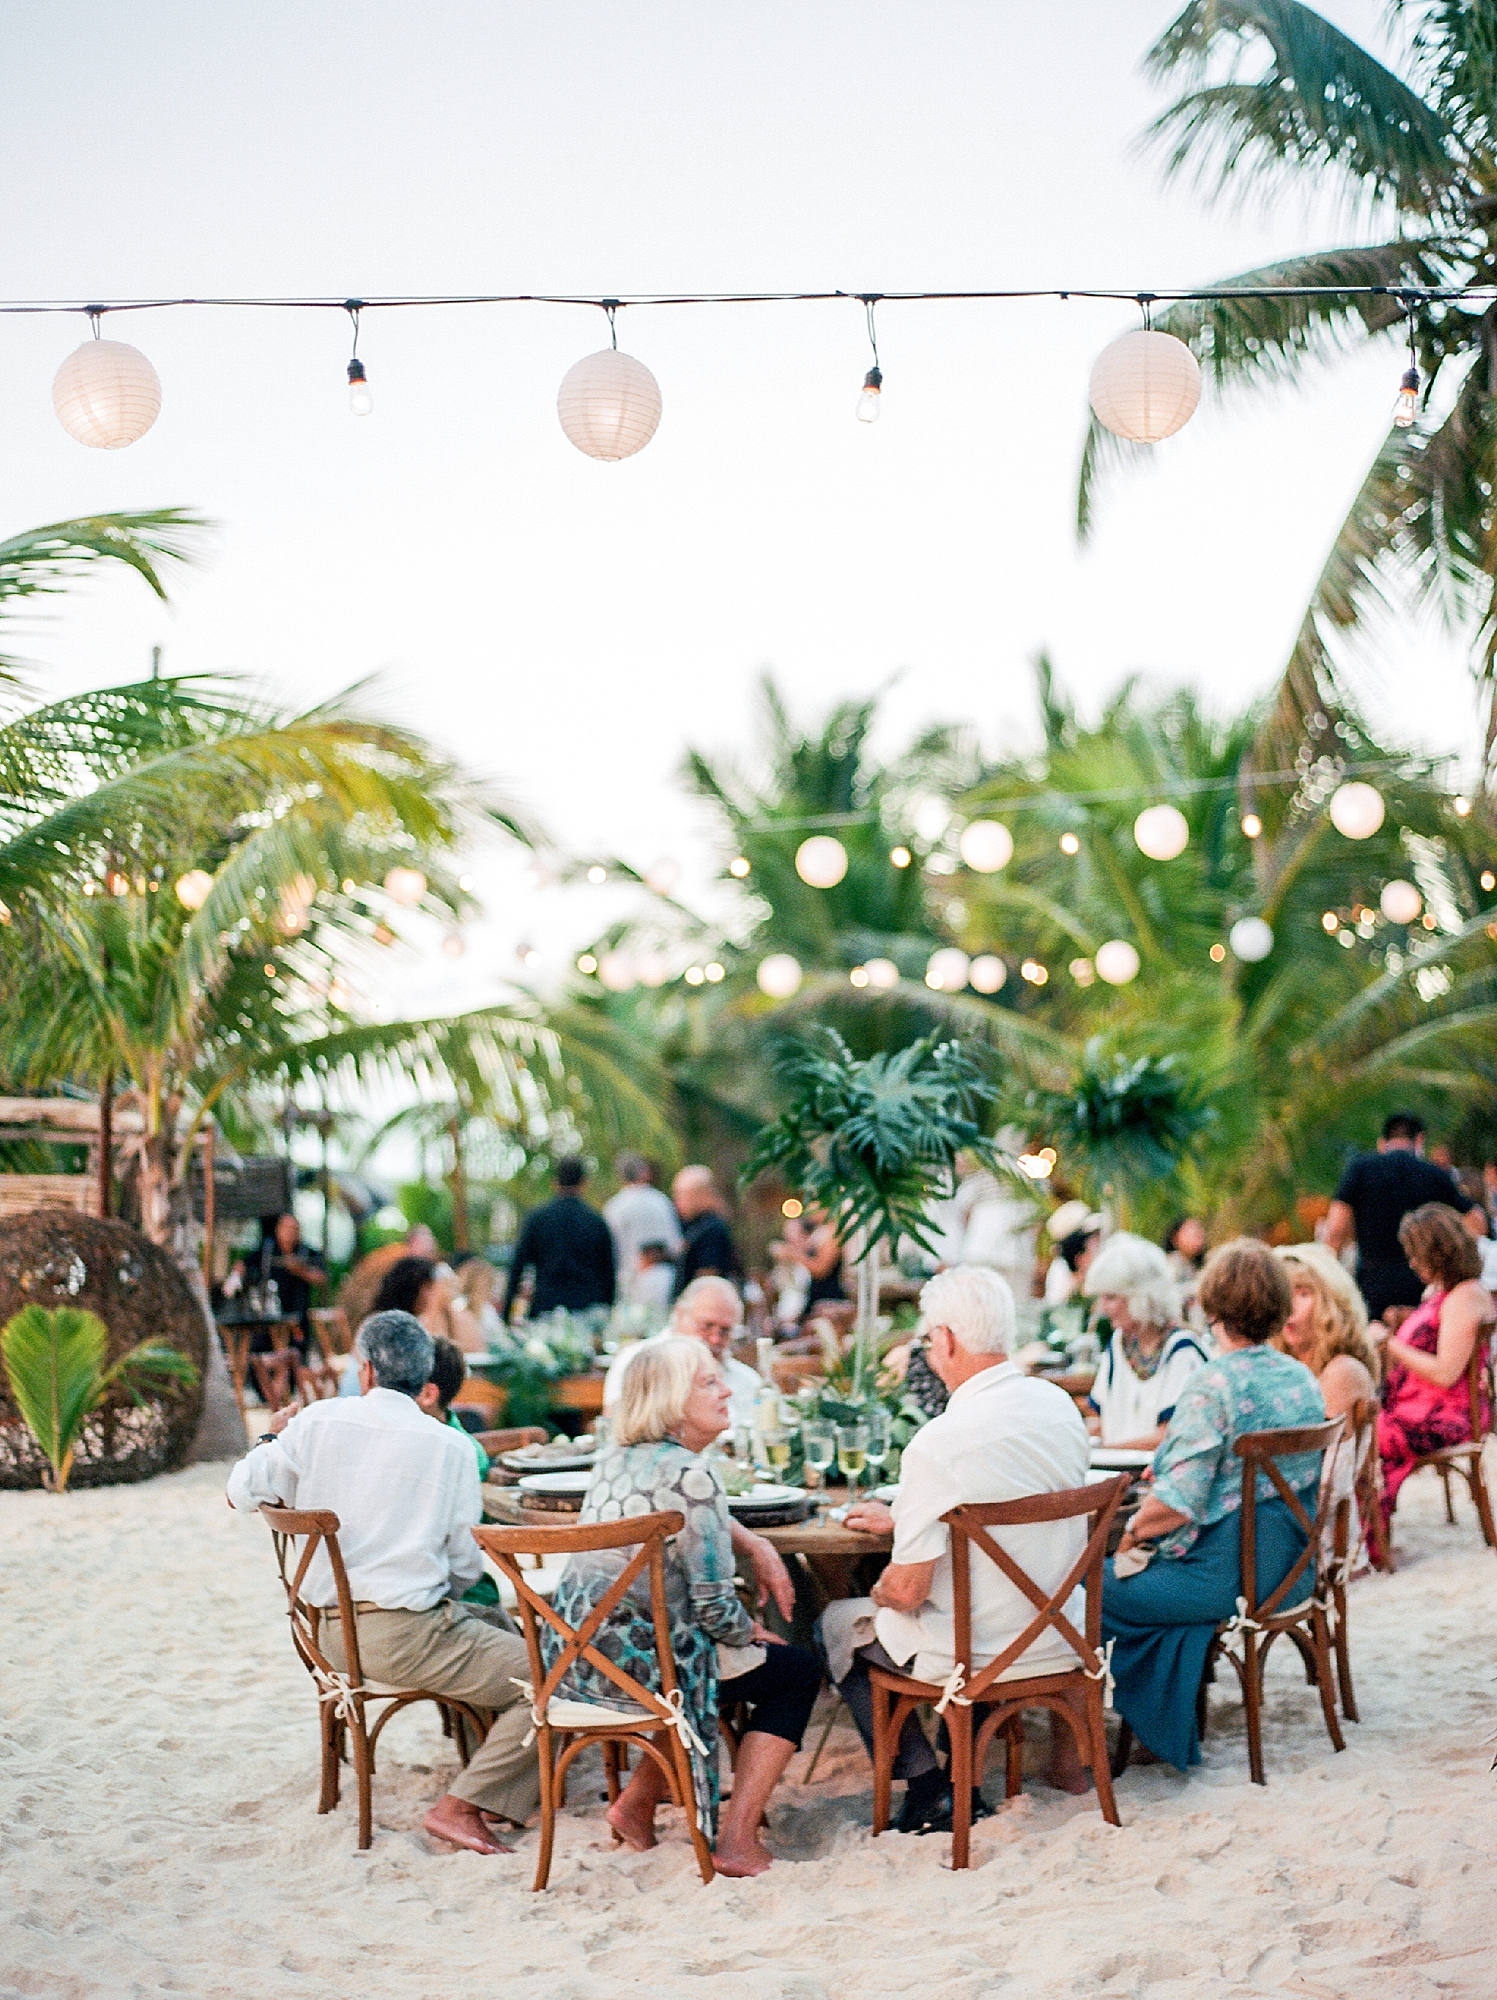 Stylish and Candid Destination Film Wedding Photography in Tulum Mexico by Magdalena Studios 0055